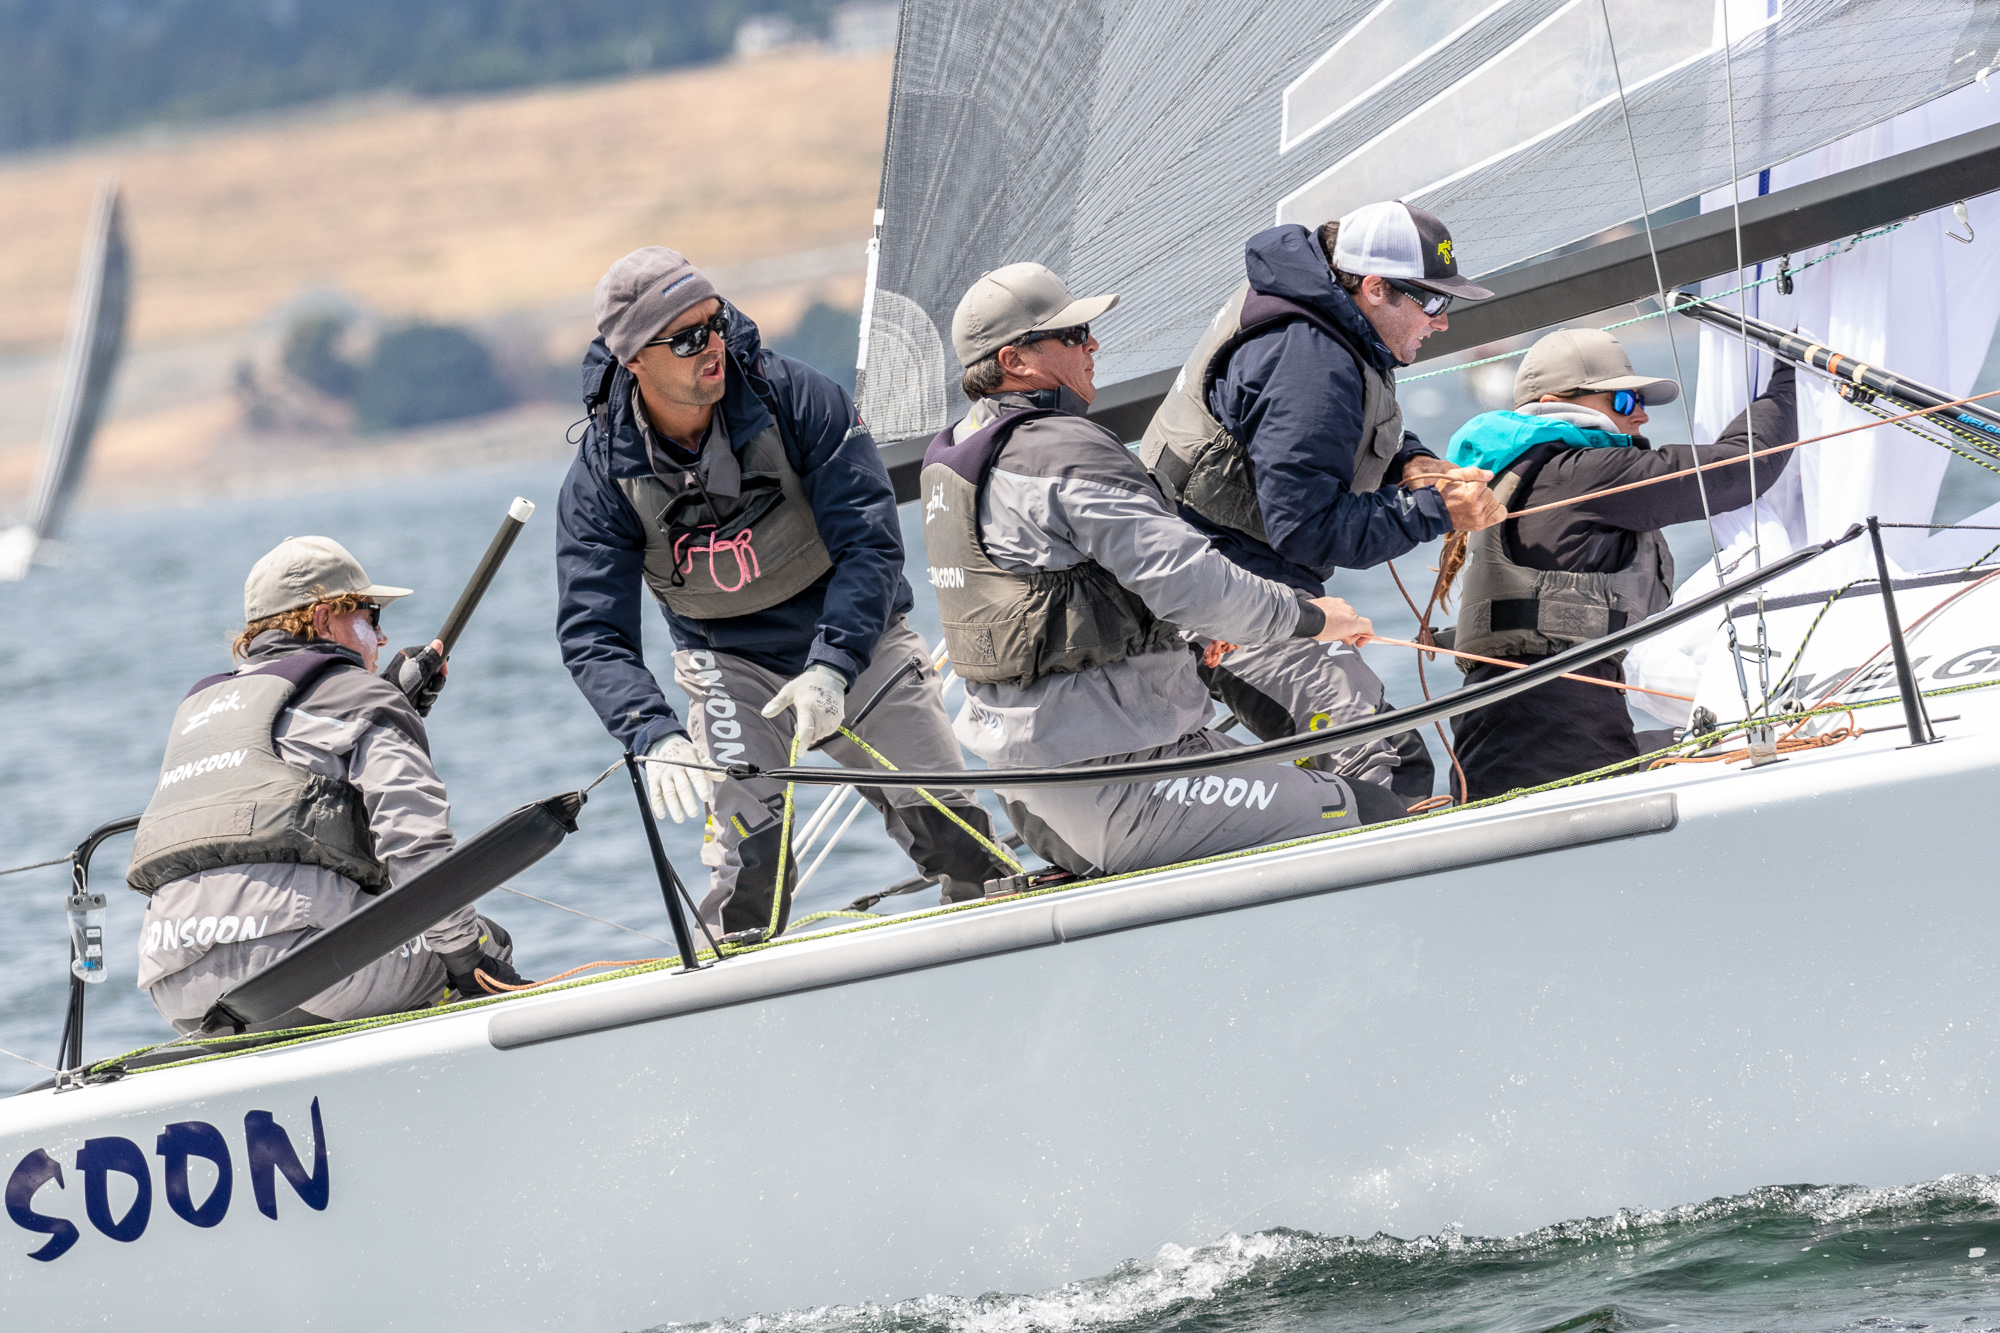 2018 Melges 24 Canadian National Champion    - USA851 MONSOON, Newport Beach, California;Bruce Ayres - helm, owner, Jeff Reynolds - spinnaker, Mike Buckley - jib & tactics,Chelsea Simms-mast, George 'Bear' Peet - bow - Photo: IM24CA/ZGN    STAGE 1 - 2018 CANADIAN NATIONALS, VICTORIA, BC  (June 2, 3) Following a month of exhilarating training in solid planing conditions Victoria was beset with uncharacteristic light air. To no one's surprise, Melges 24 class stalwart and light-air wizard from Newport Beach, California Bruce Ayres' A851 MONSOON carried the weekend. Hot on MONSOON's tail was Alan Field's USA829 WTF out of Southern California and Richard Reid's CAN853 ZINGARA of Port Credit, Ontario.